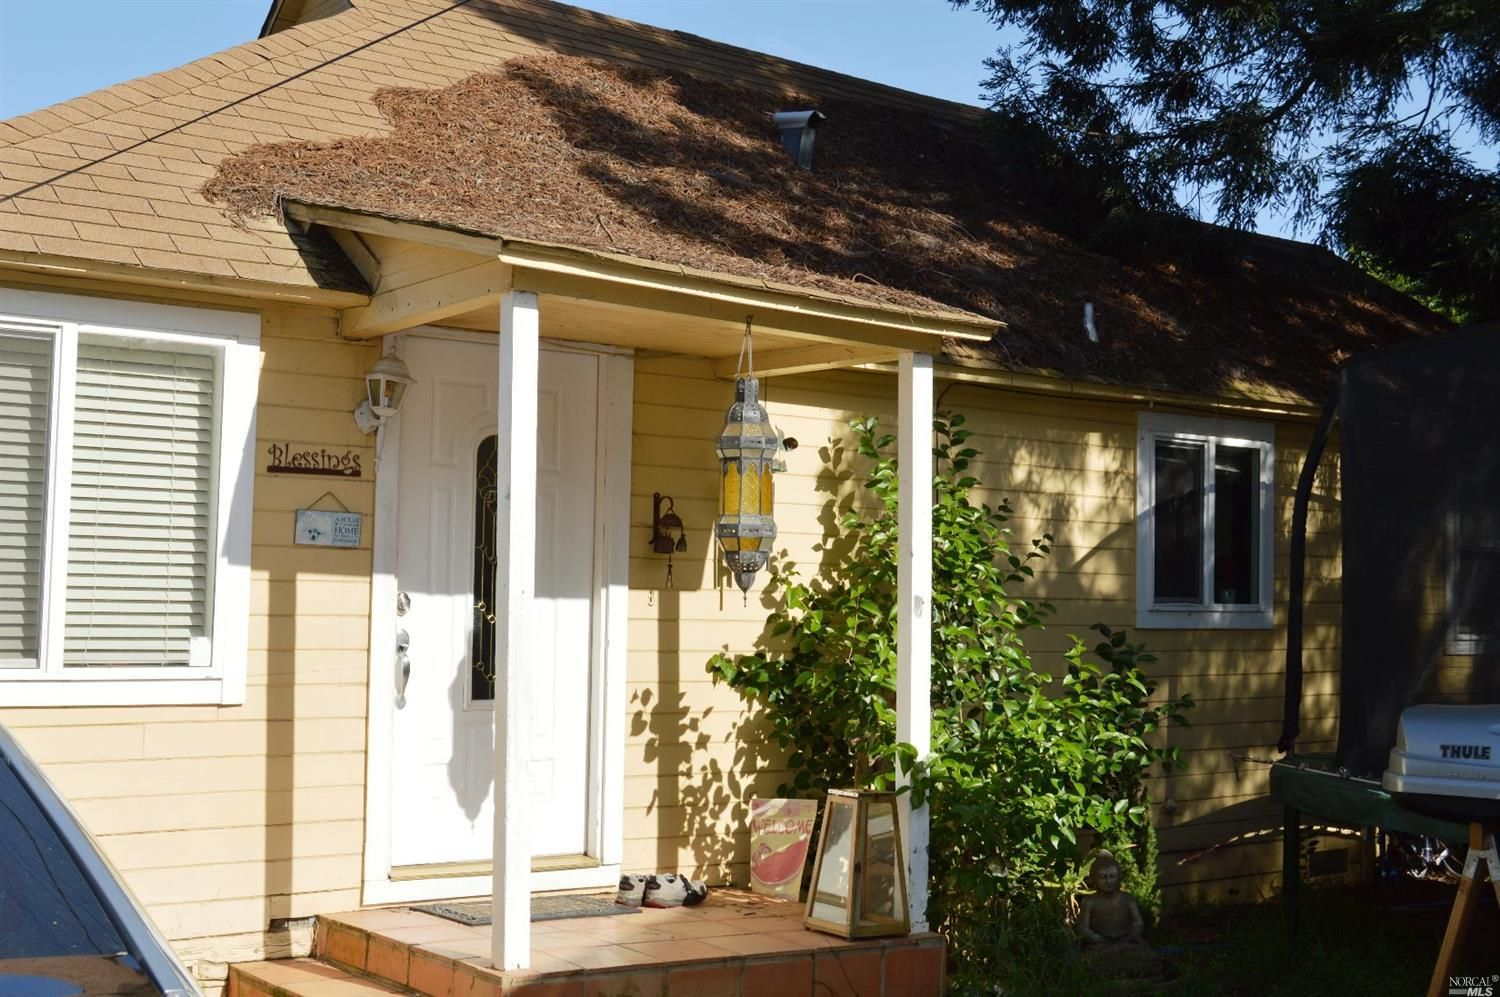 $399000 - 568 Monroe St Napa CA 94559 Location Location Etc....This very cute California bungalow is located on a small flag lot in a great location in Old Town Napa.  The homes is very small but comfortable with lots of doors and windows. http://bit.ly/2qOZfzf